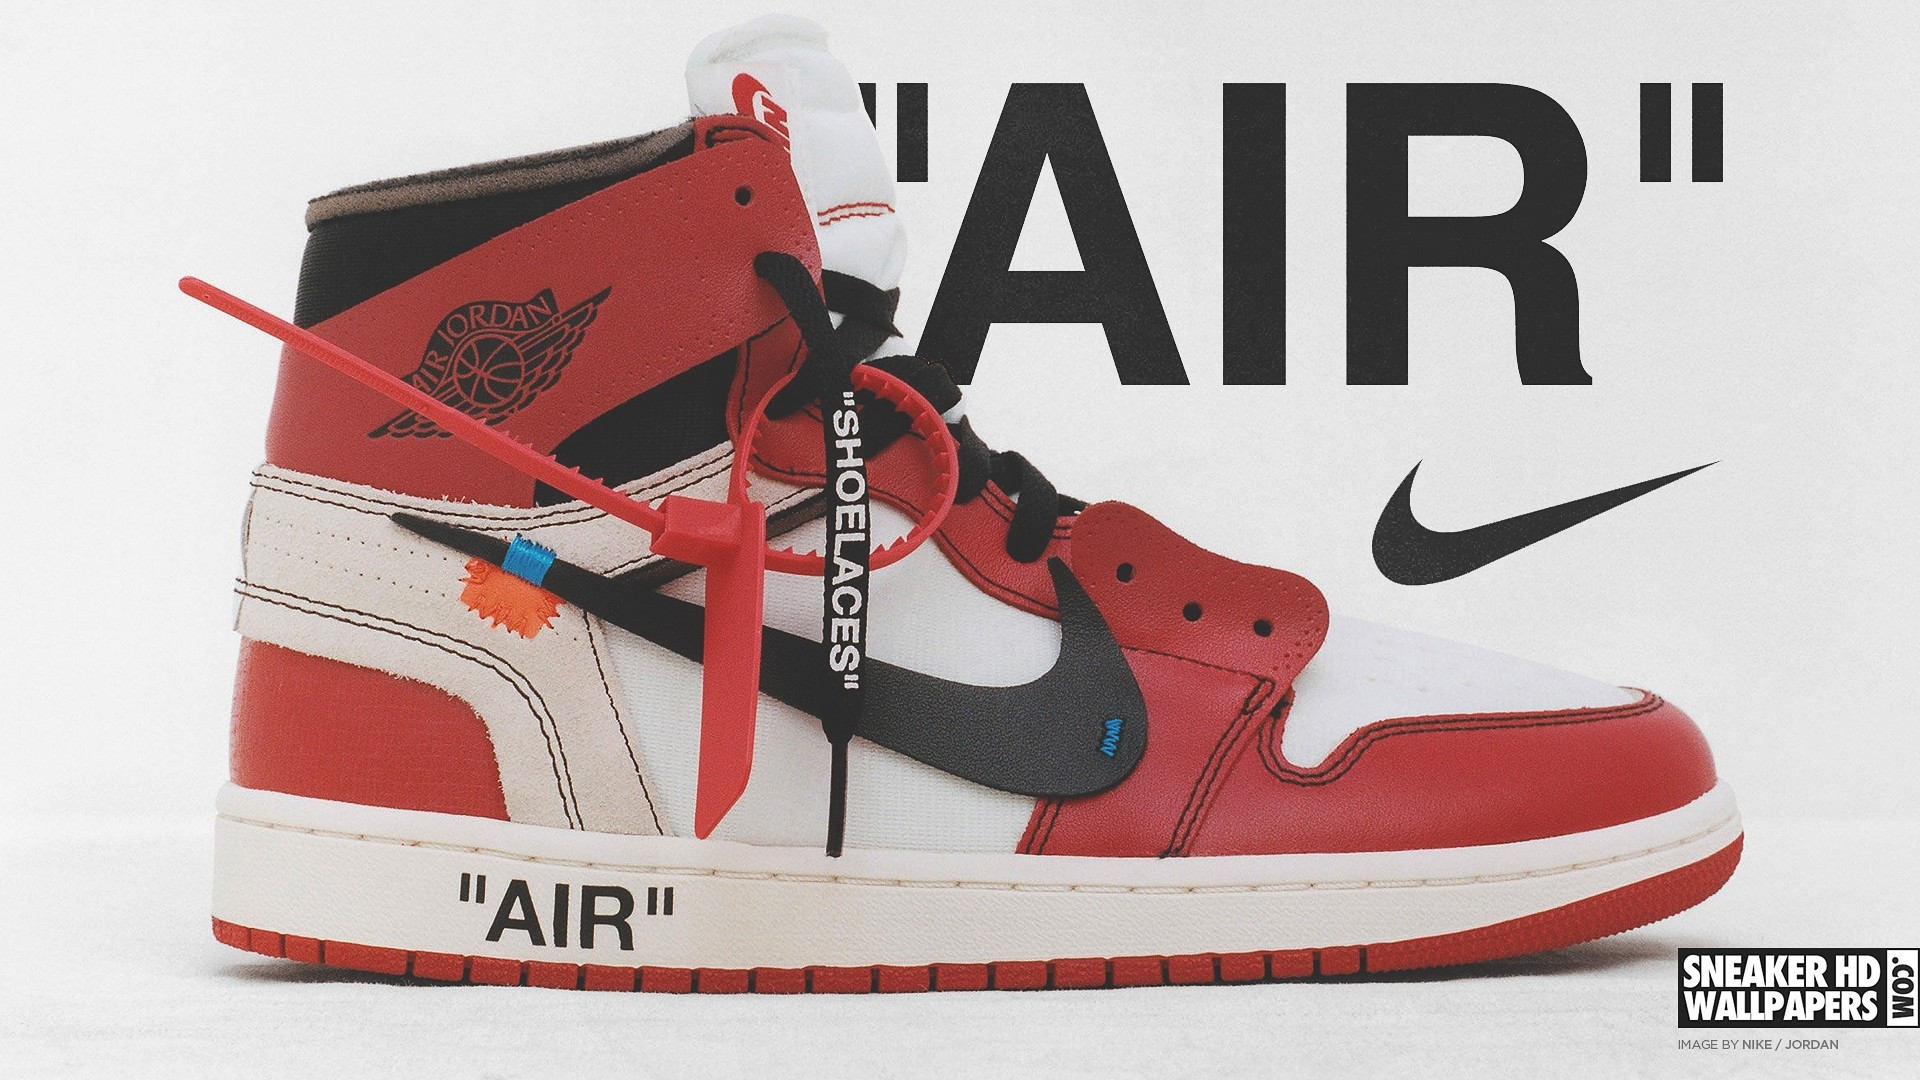 Jordan 1 Wallpaper Picture hd